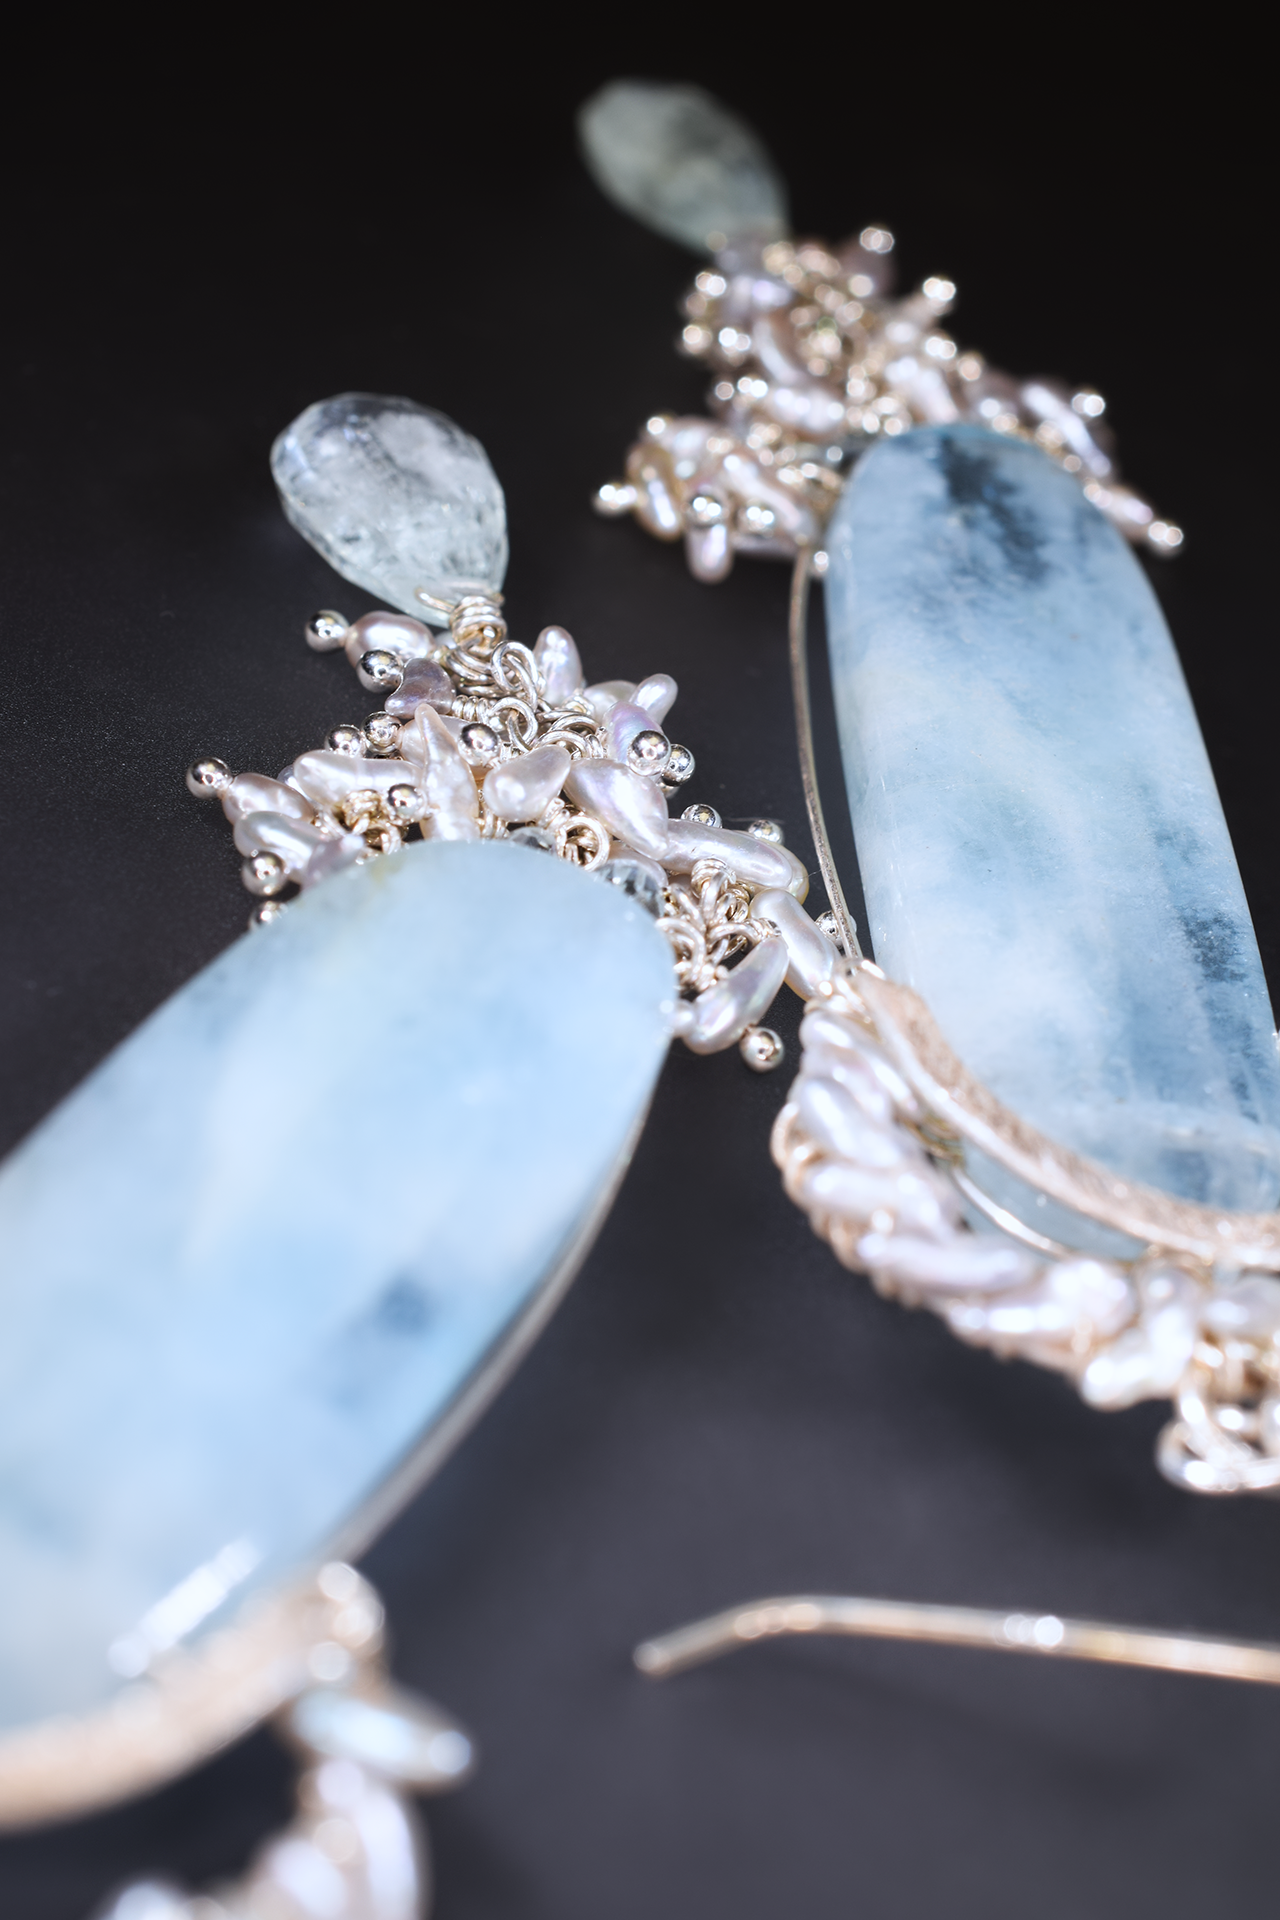 long aquamarine pendant earrings with sterling silver